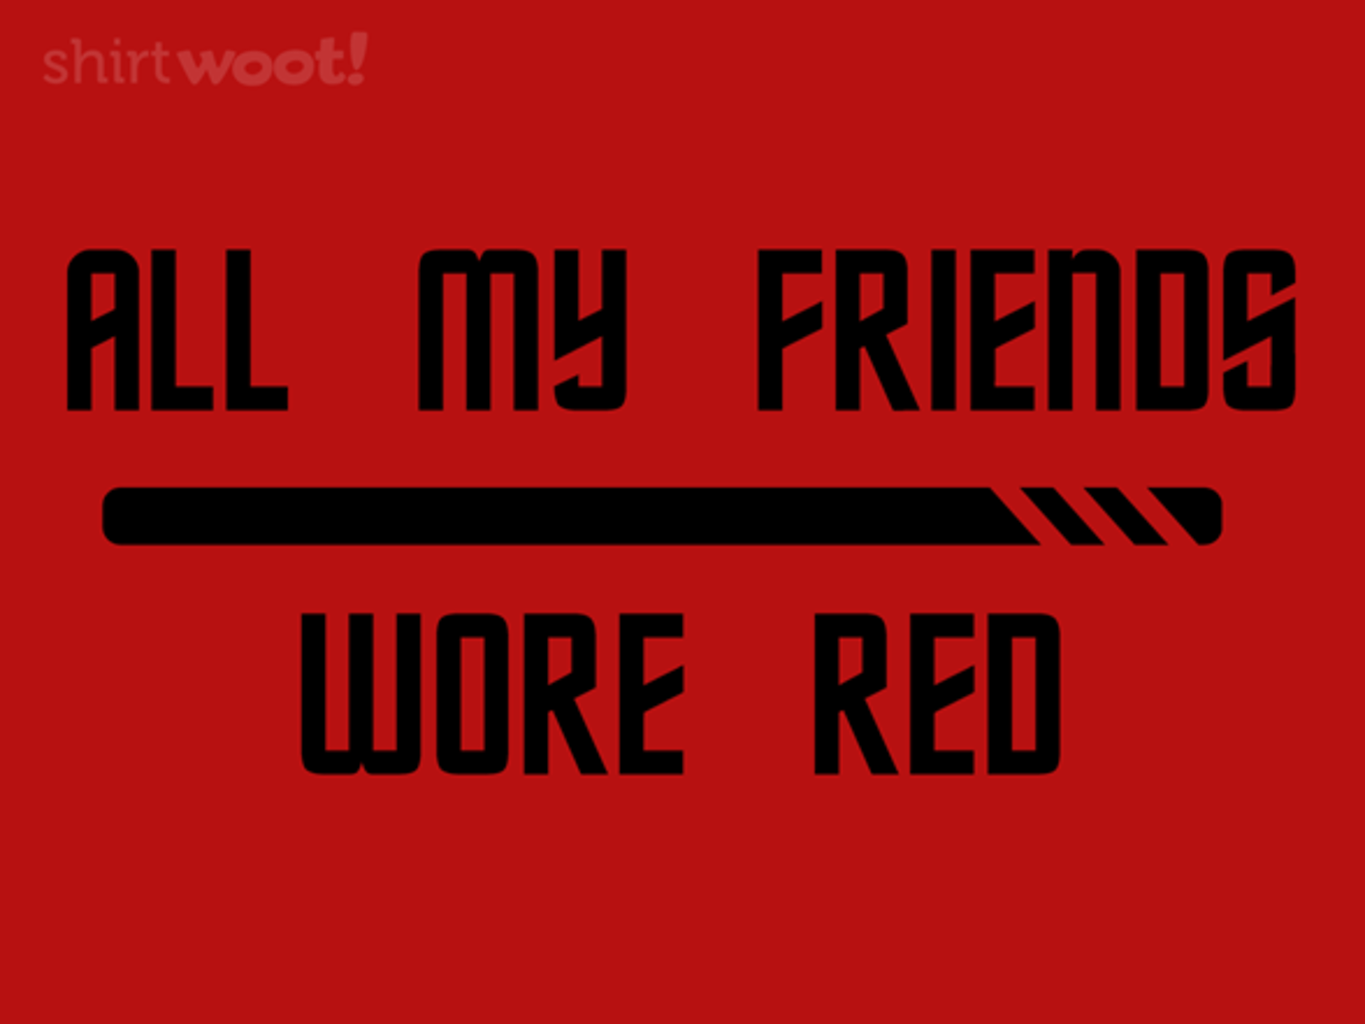 Woot!: Red Shirt Friends - $15.00 + Free shipping